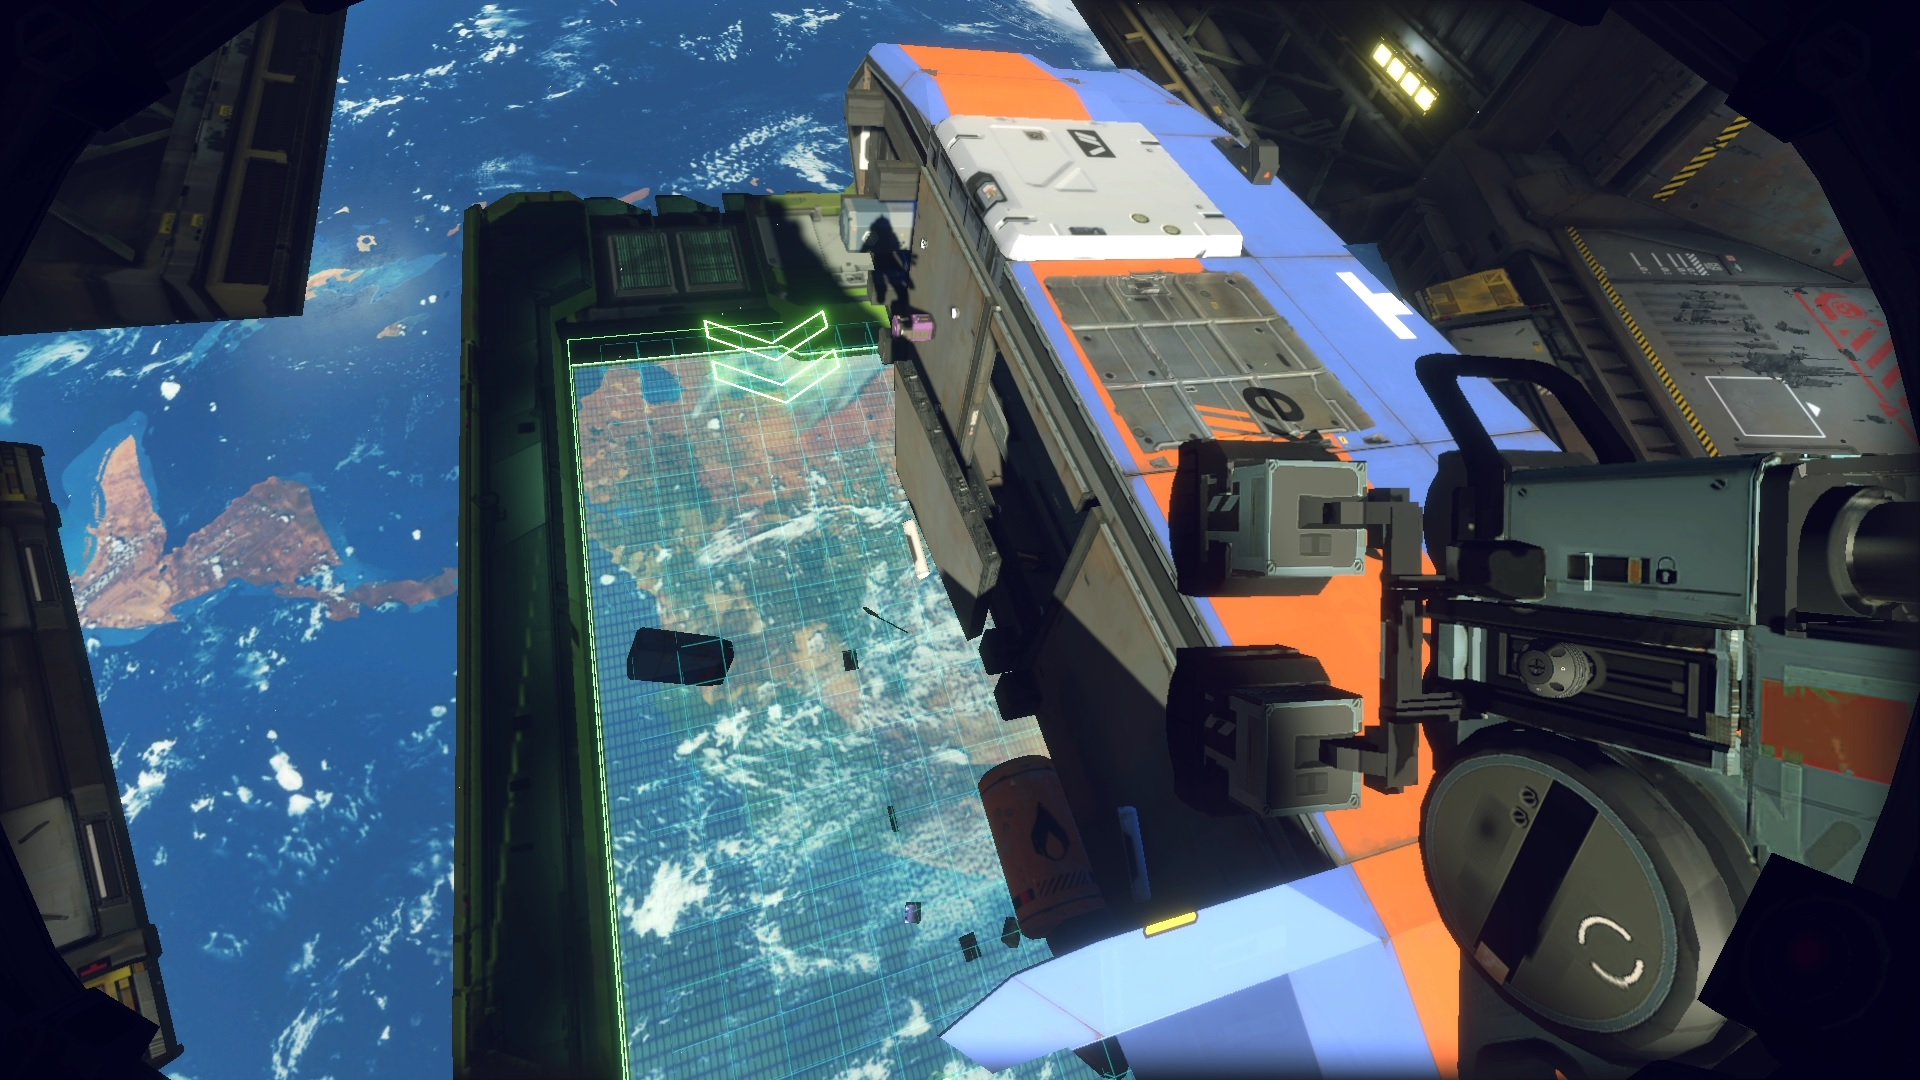 A screenshot from Hardspace Shipbreaker showing the player poised over a ship, about to slice it open